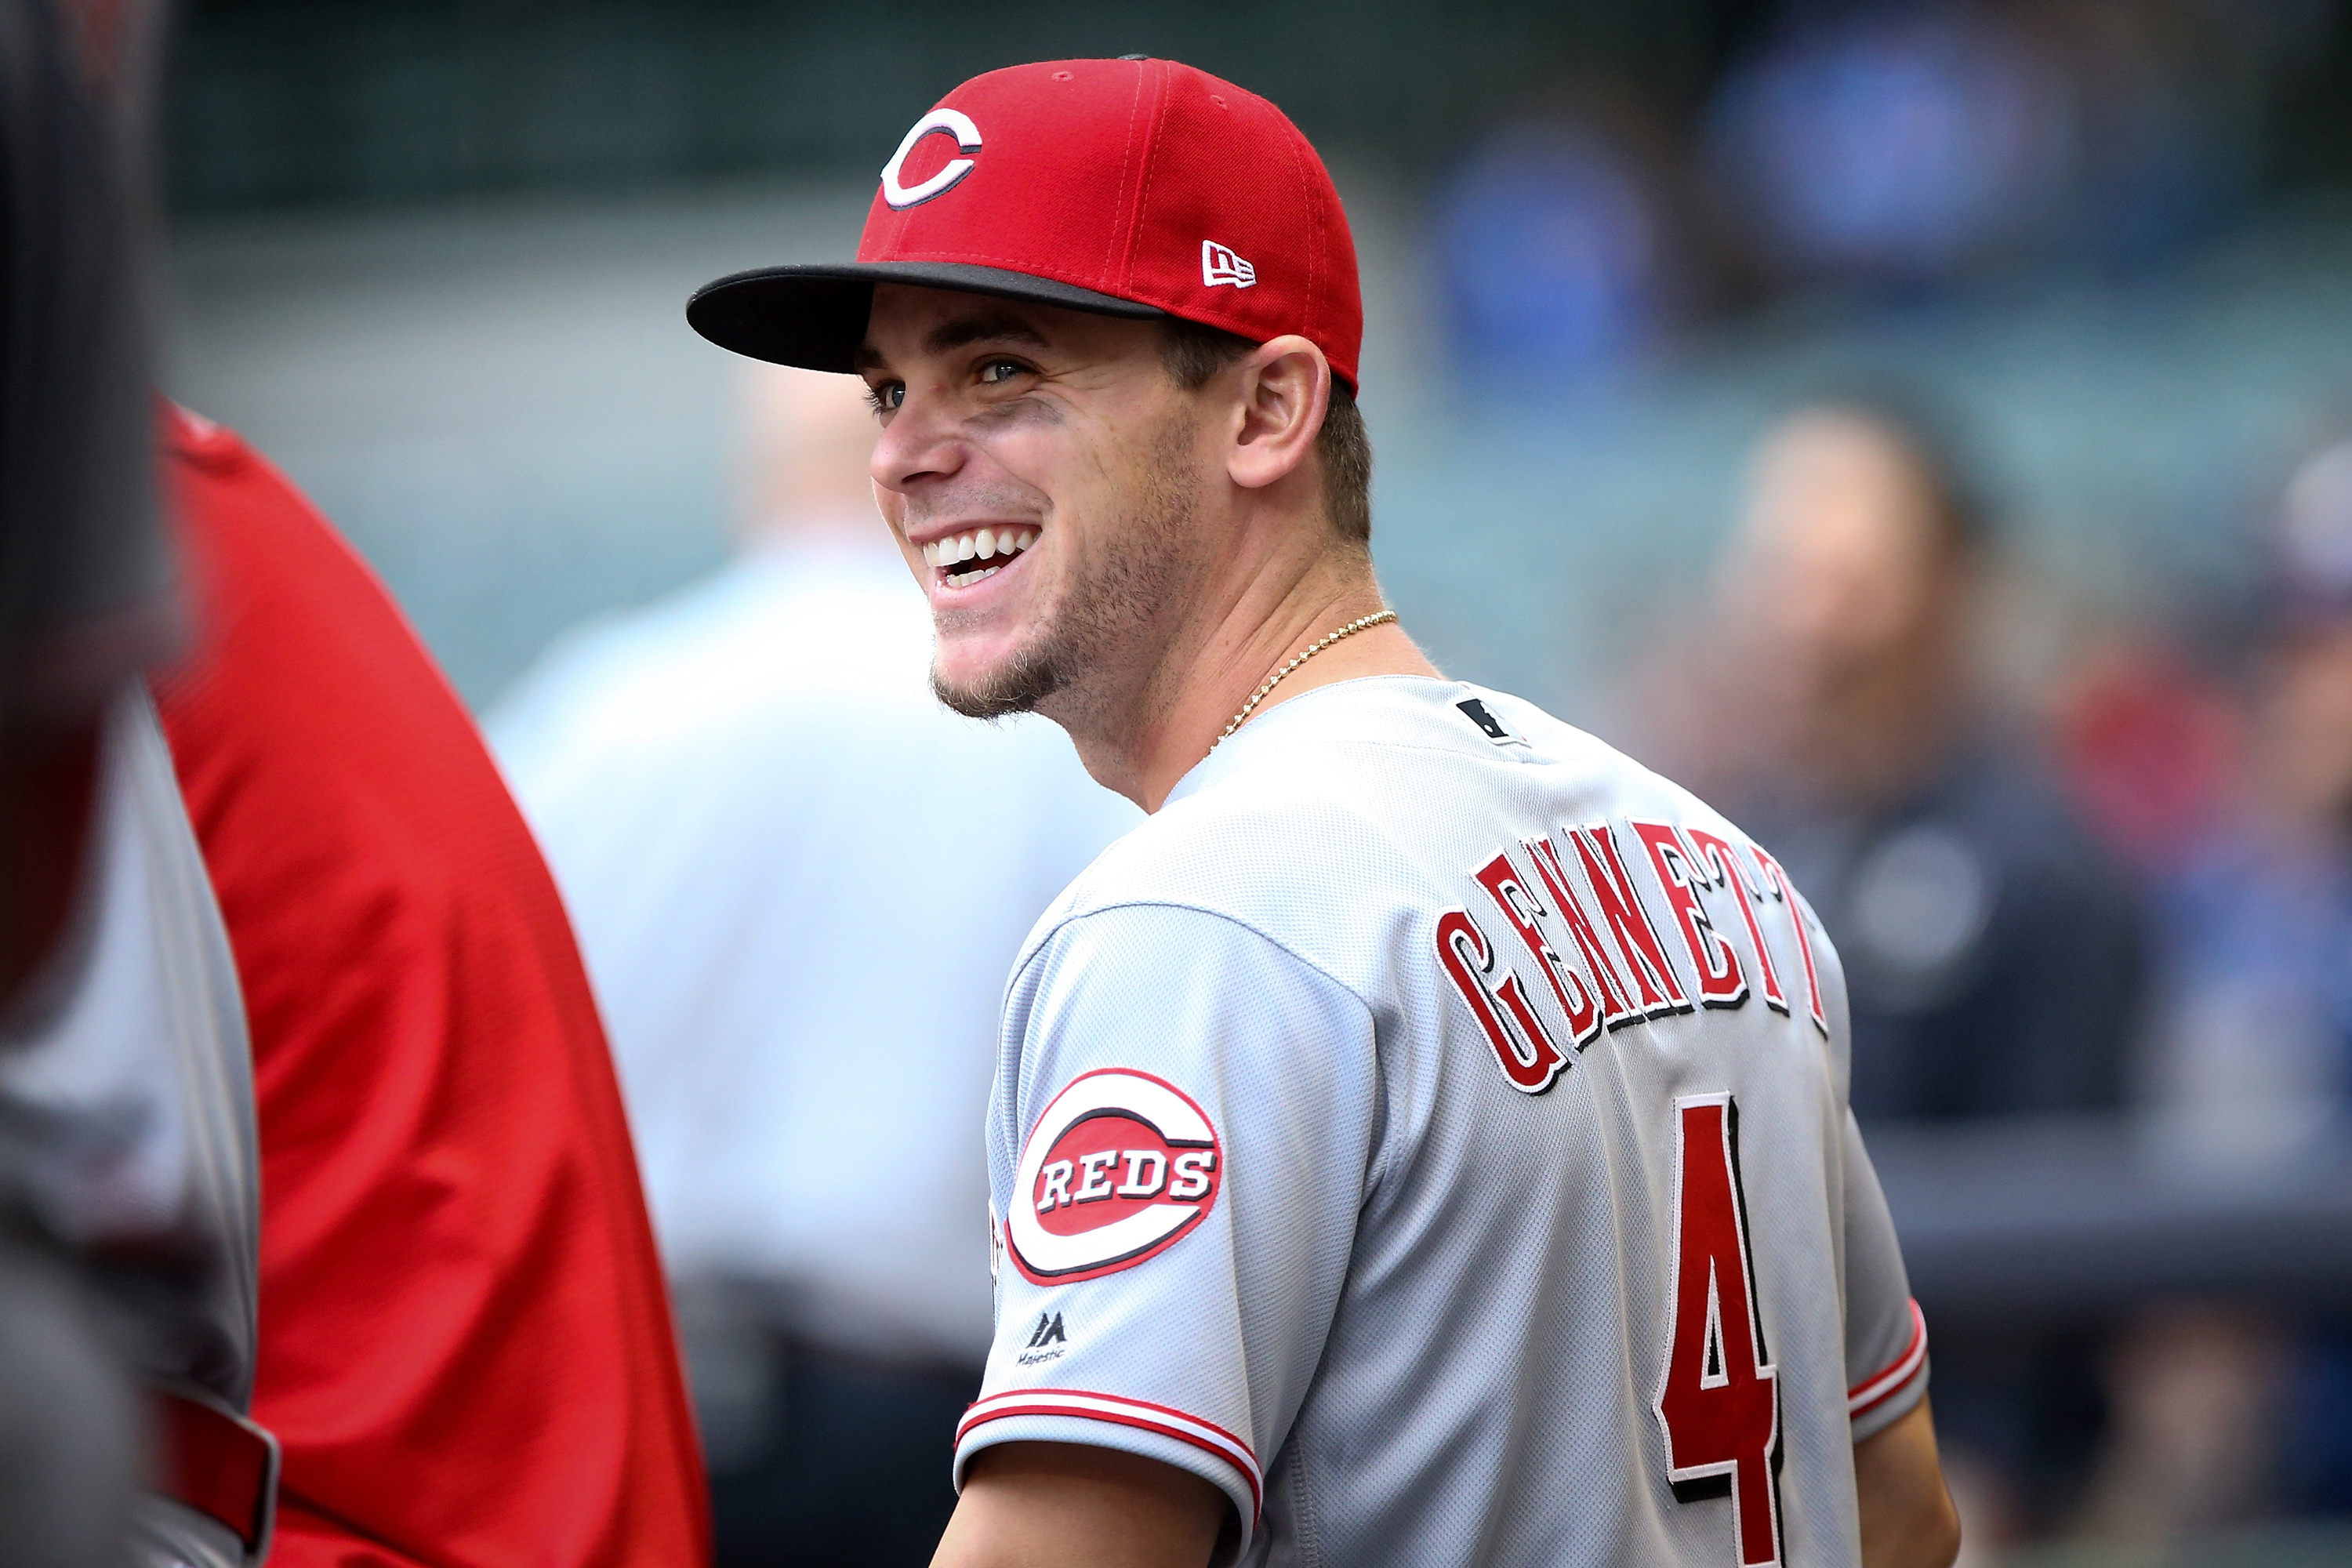 MILWAUKEE, WI - APRIL 25:  Scooter Gennett #4 of the Cincinnati Reds walks through the dugout before the game against the Milwaukee Brewers at Miller Park on April 25, 2017 in Milwaukee, Wisconsin. (Photo by Dylan Buell/Getty Images)